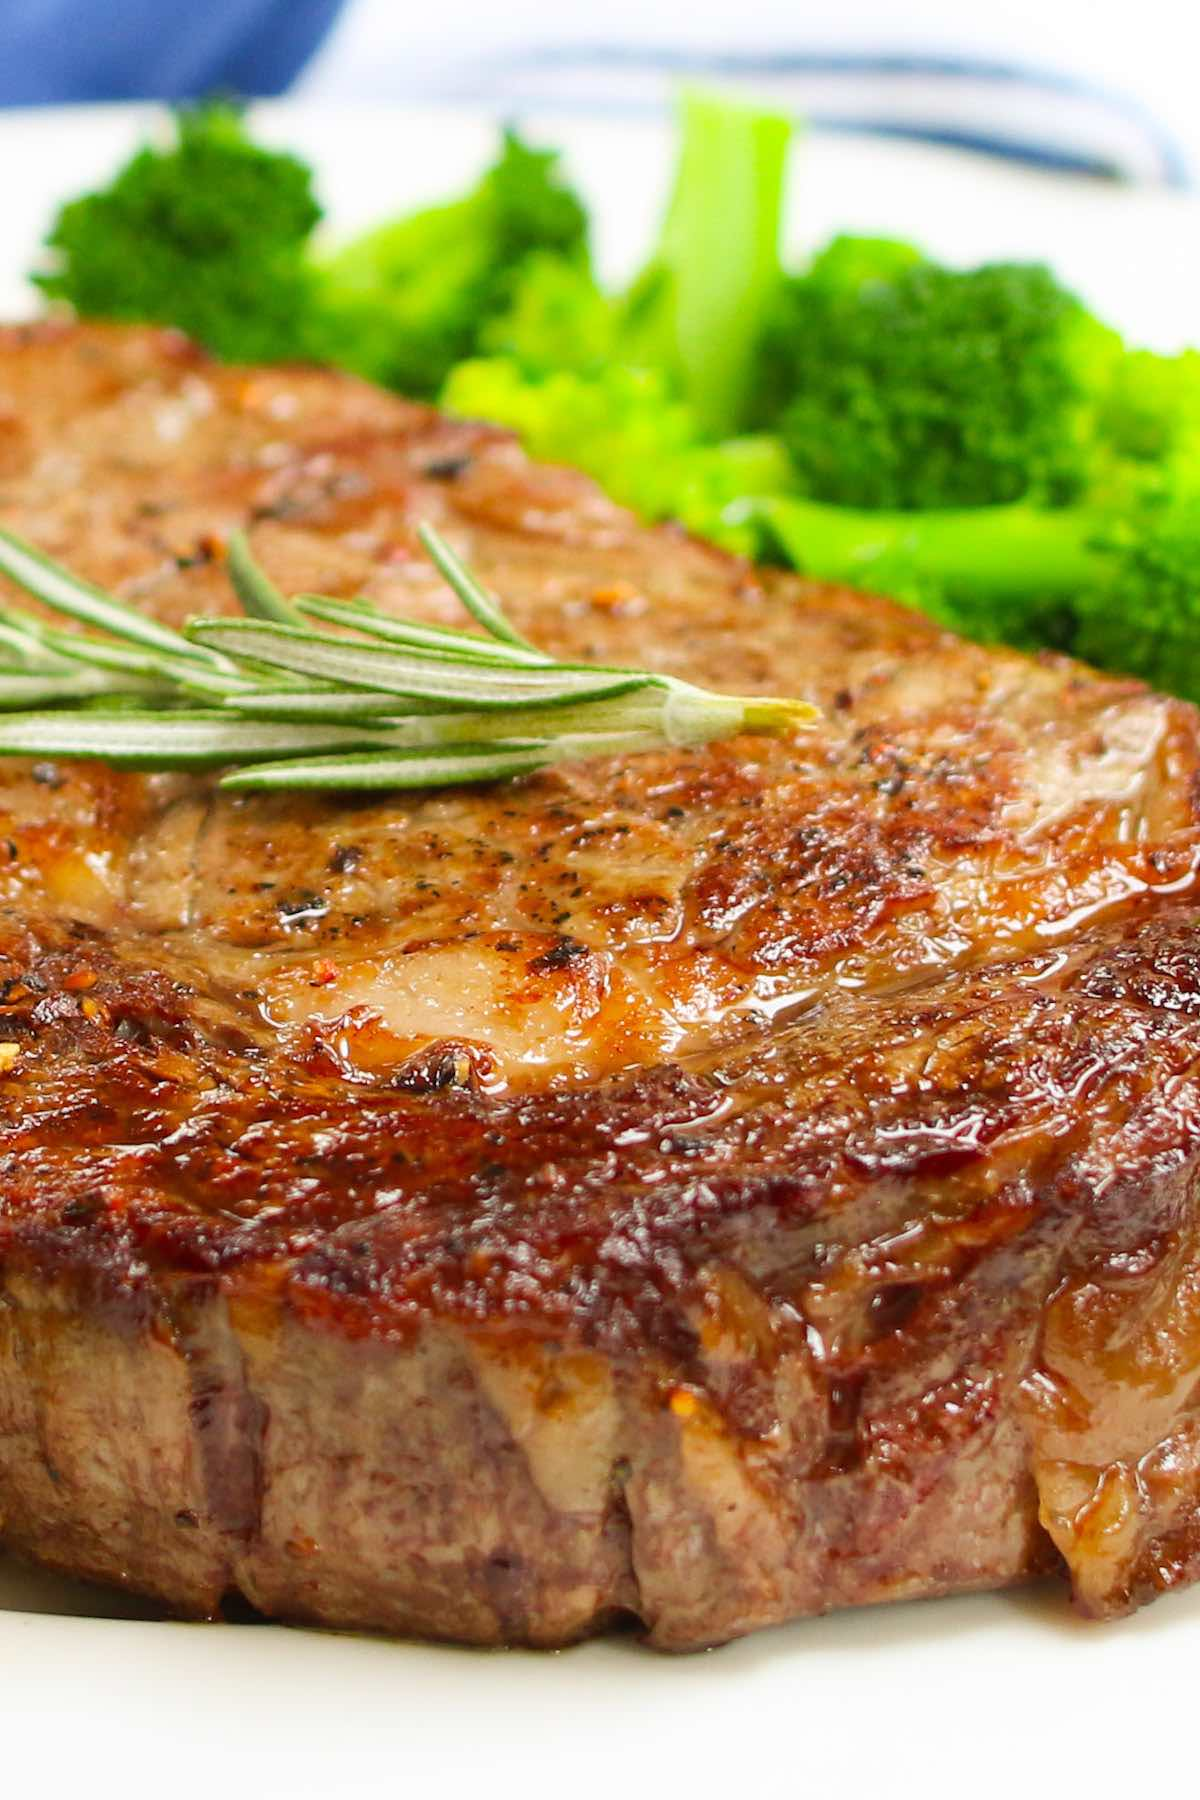 Closeup of the surface of a rib eye showing beautiful caramelization and seasoning after cooking. This rib eye steak recipe is pan seared to perfection in a cast iron pan with olive oil, butter, salt and pepper